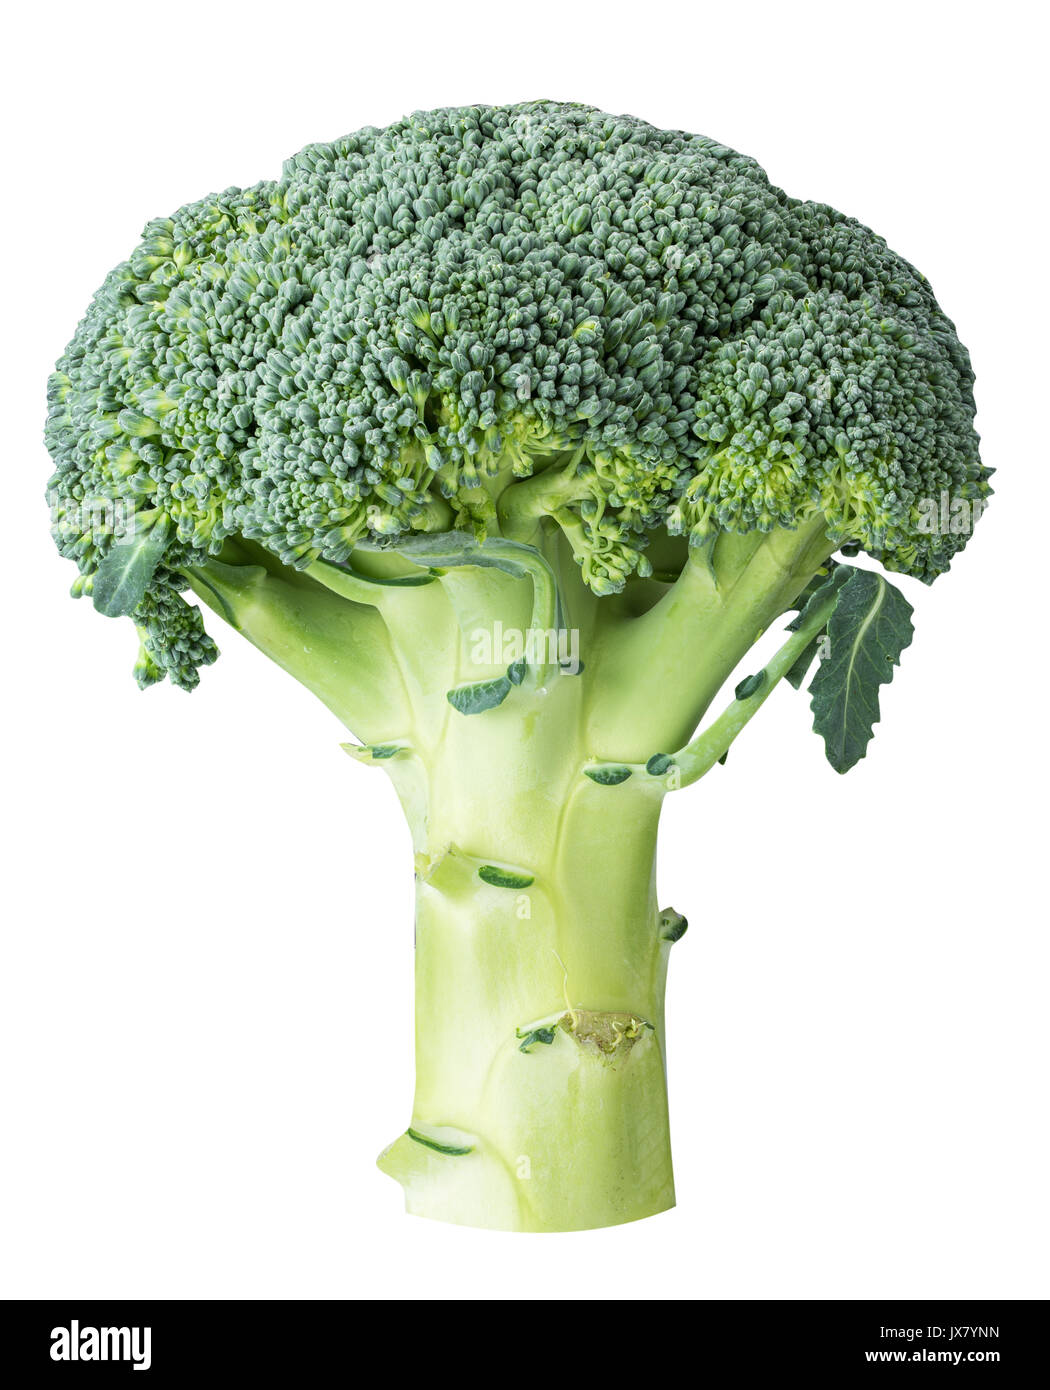 Cabbage broccoli isolated on white background with clipping path - Stock Image